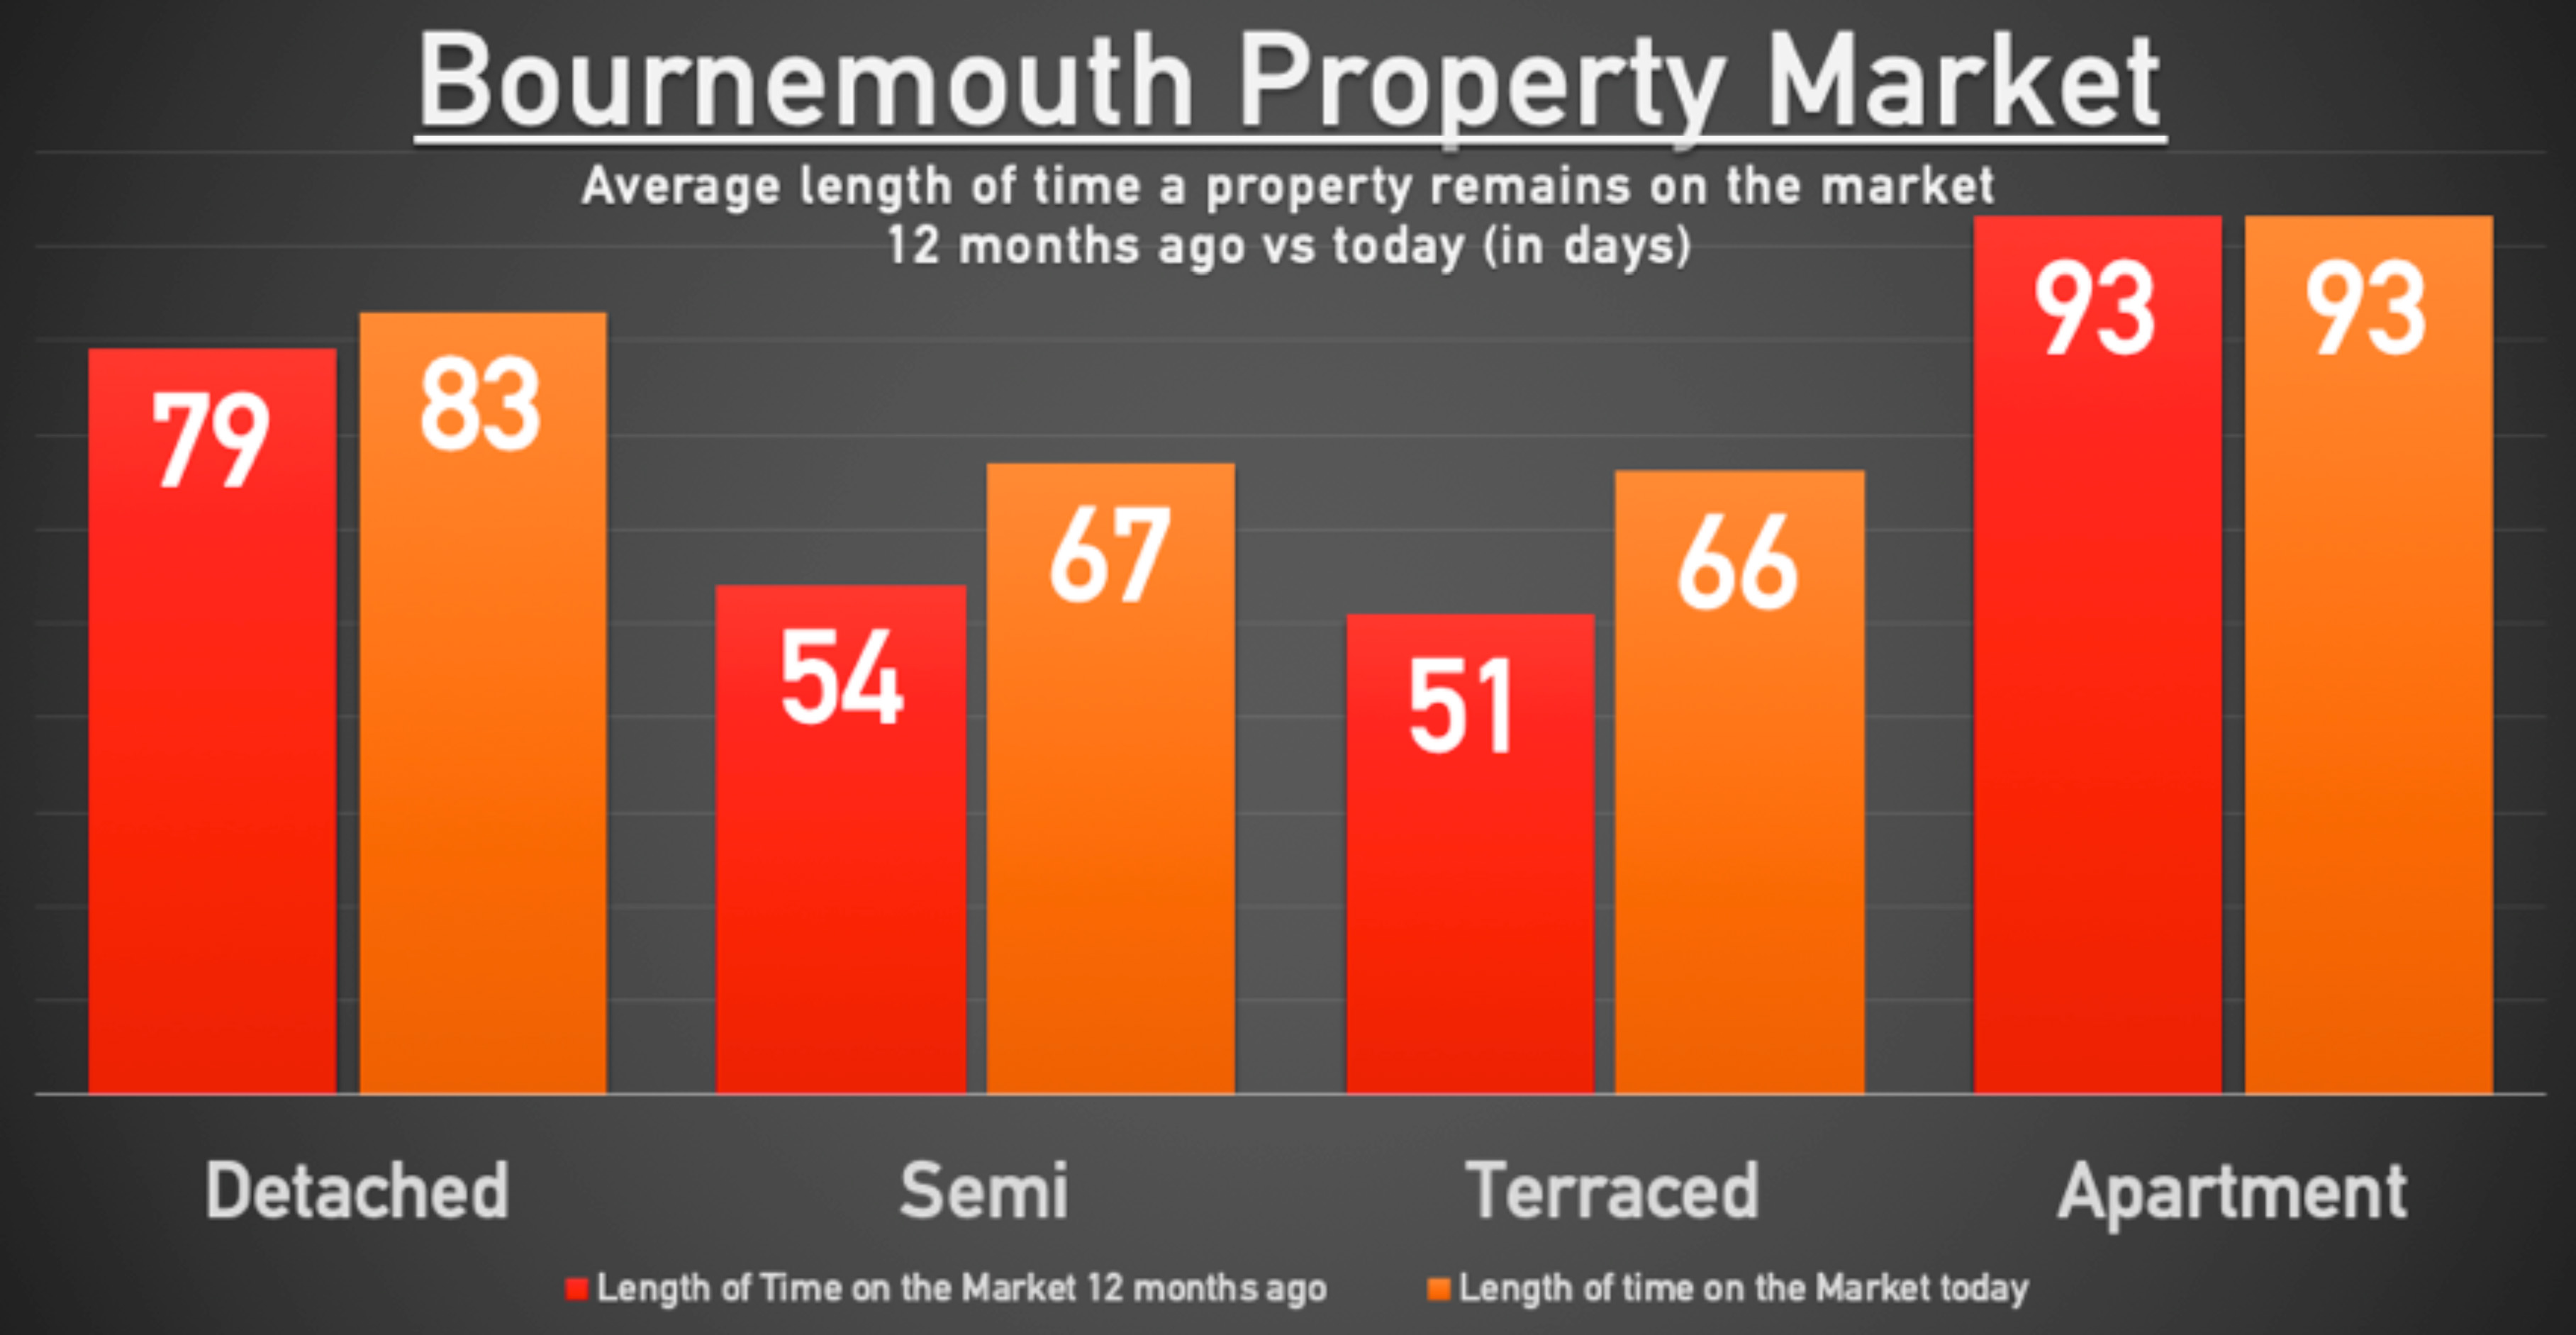 A graph showing the average length of time a Bournemouth property is on the market now compared to last year